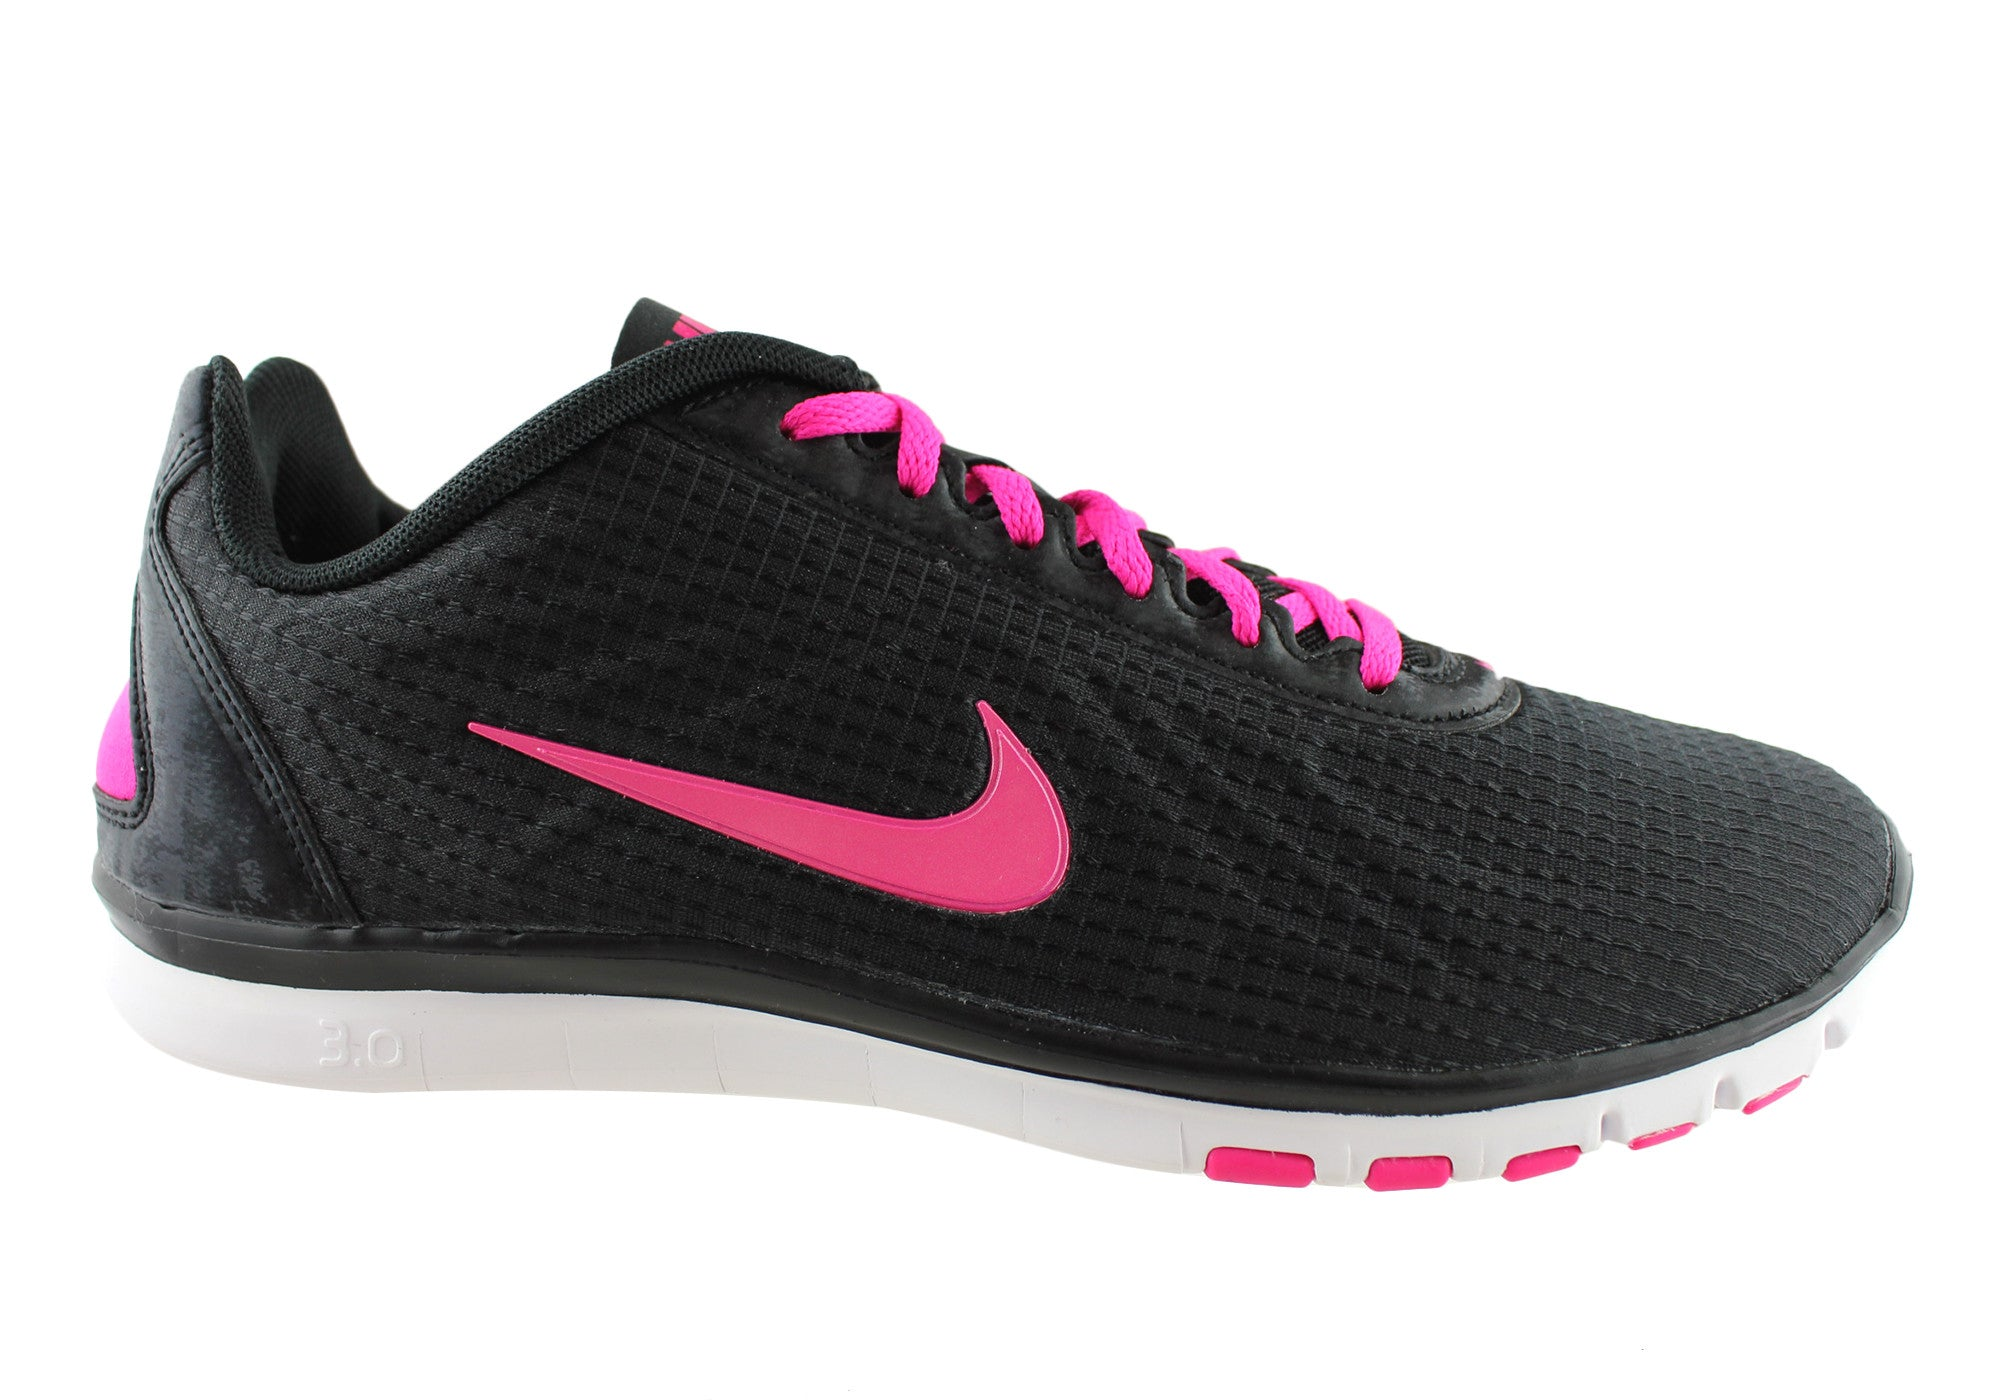 save off 236d9 29dd7 Home Nike Free TR Luxe Tech Womens Comfortable Lace Up Shoes. Black  ...